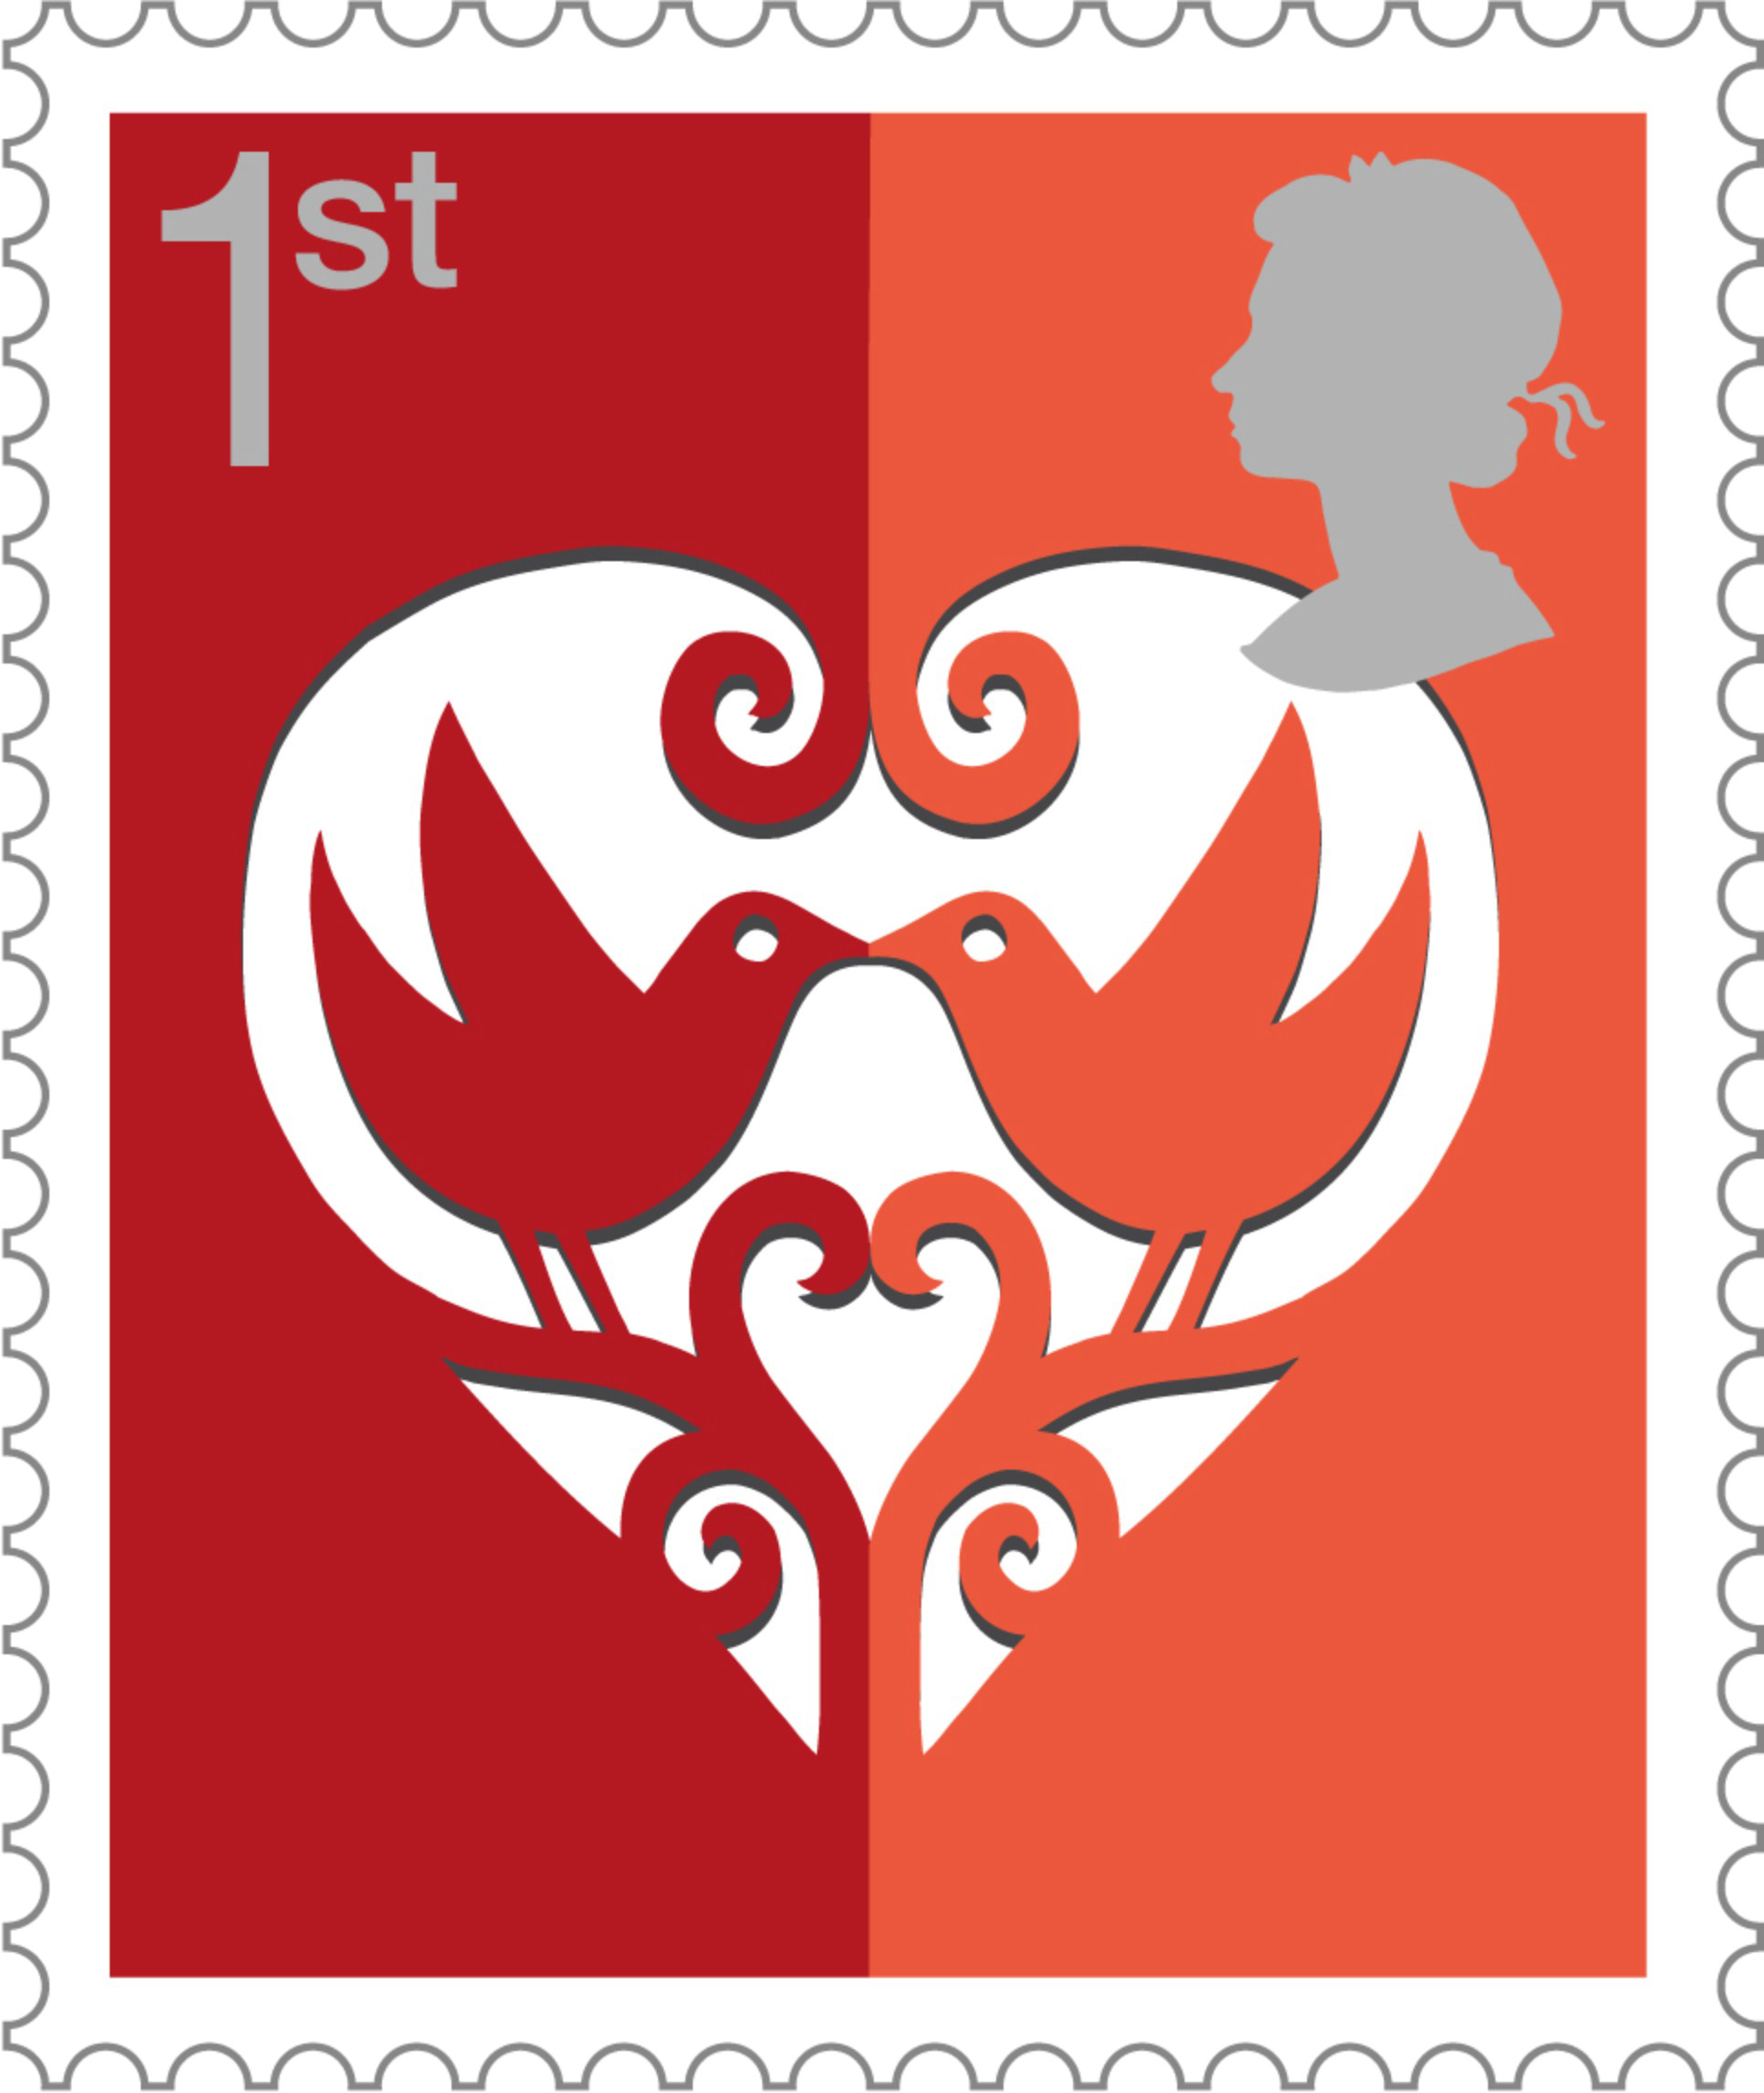 Smiler stamp depicting love, value first class.